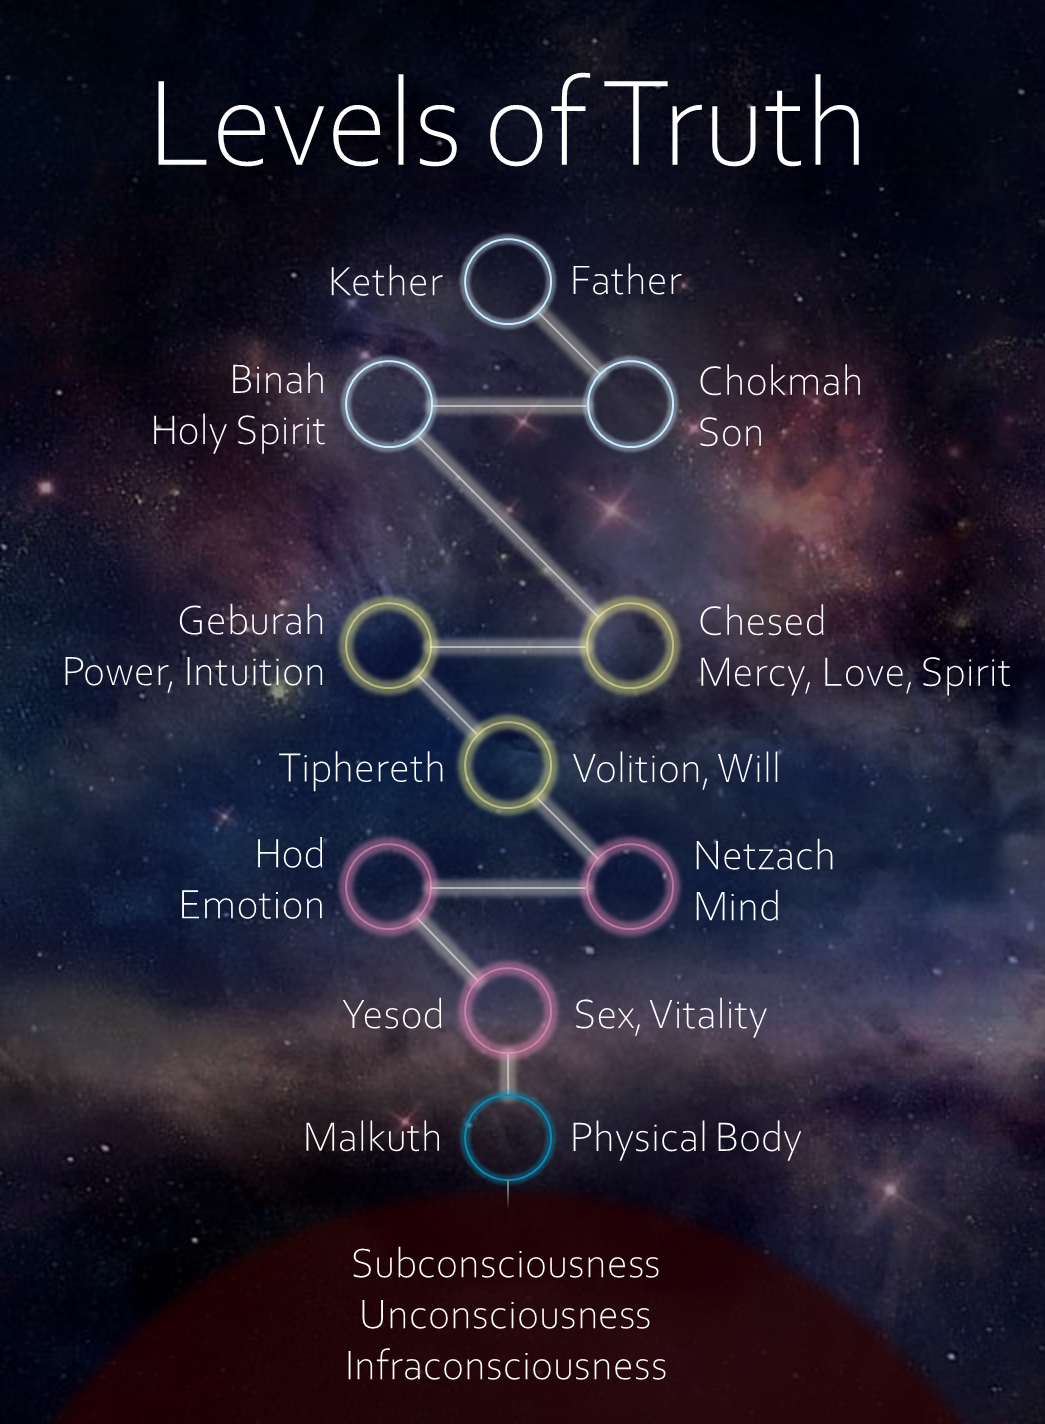 tree of life levels of truth